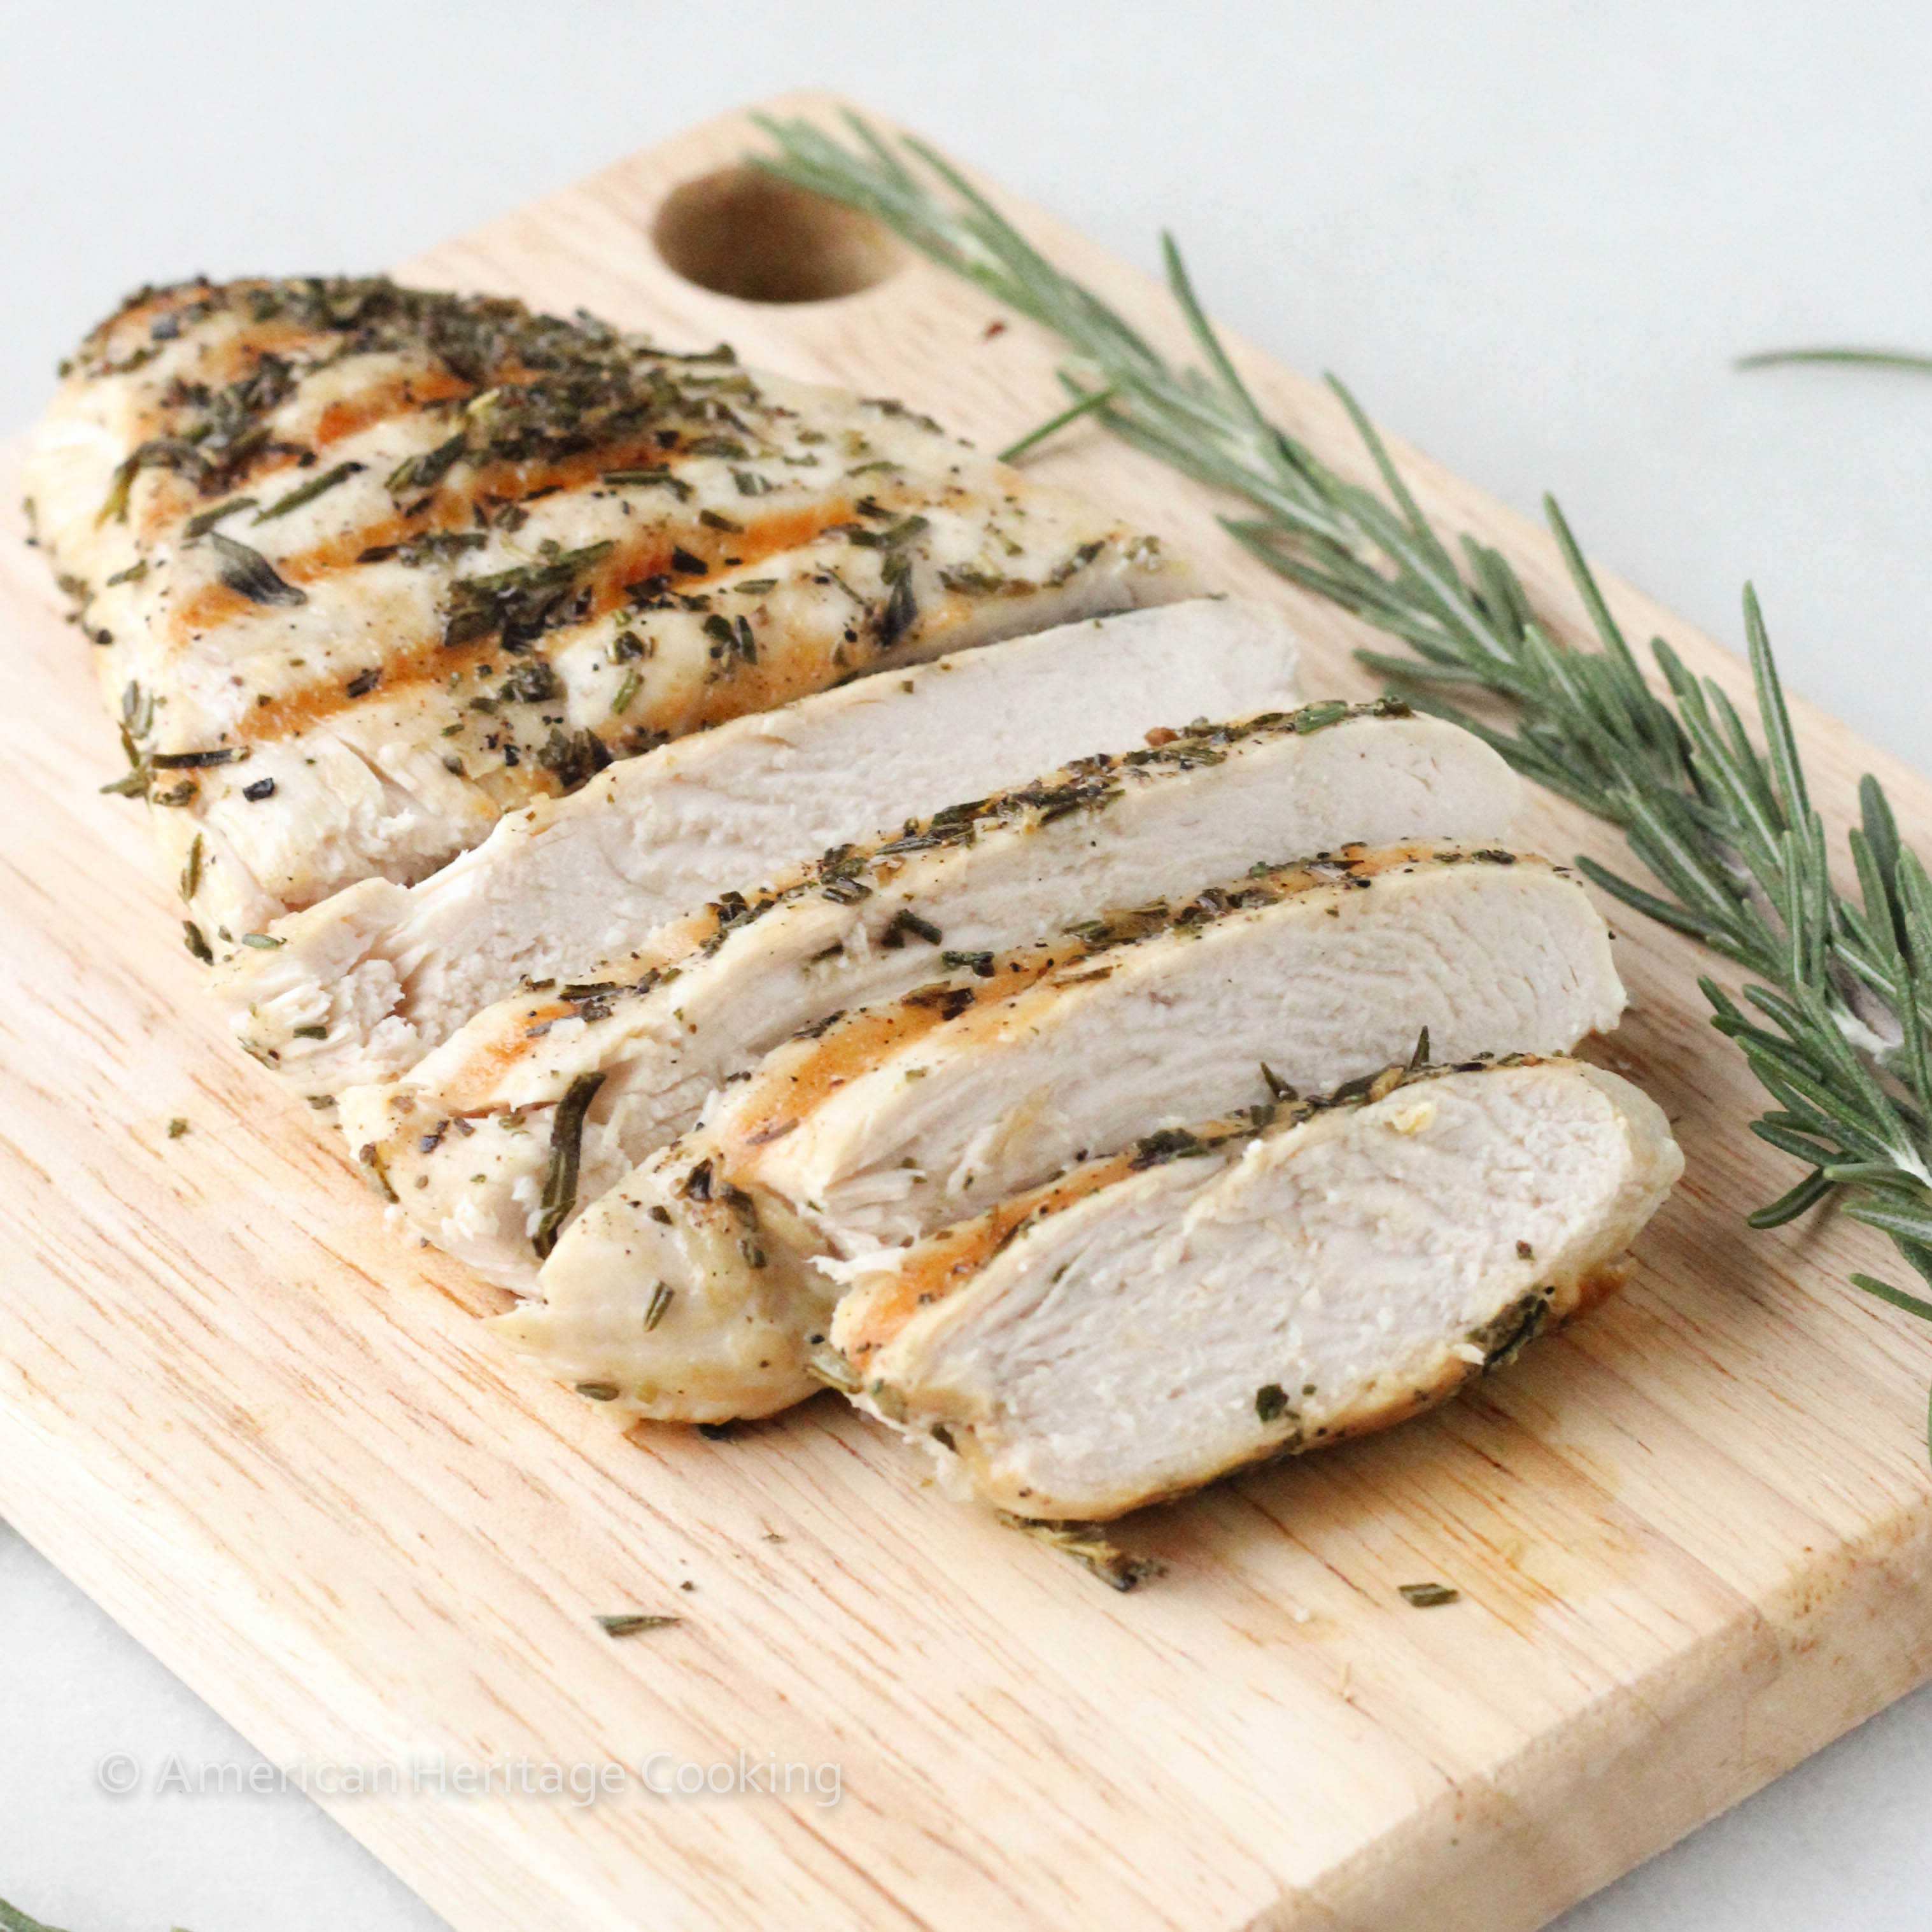 Foolproof Grilled Rosemary Chicken - American Heritage Cooking